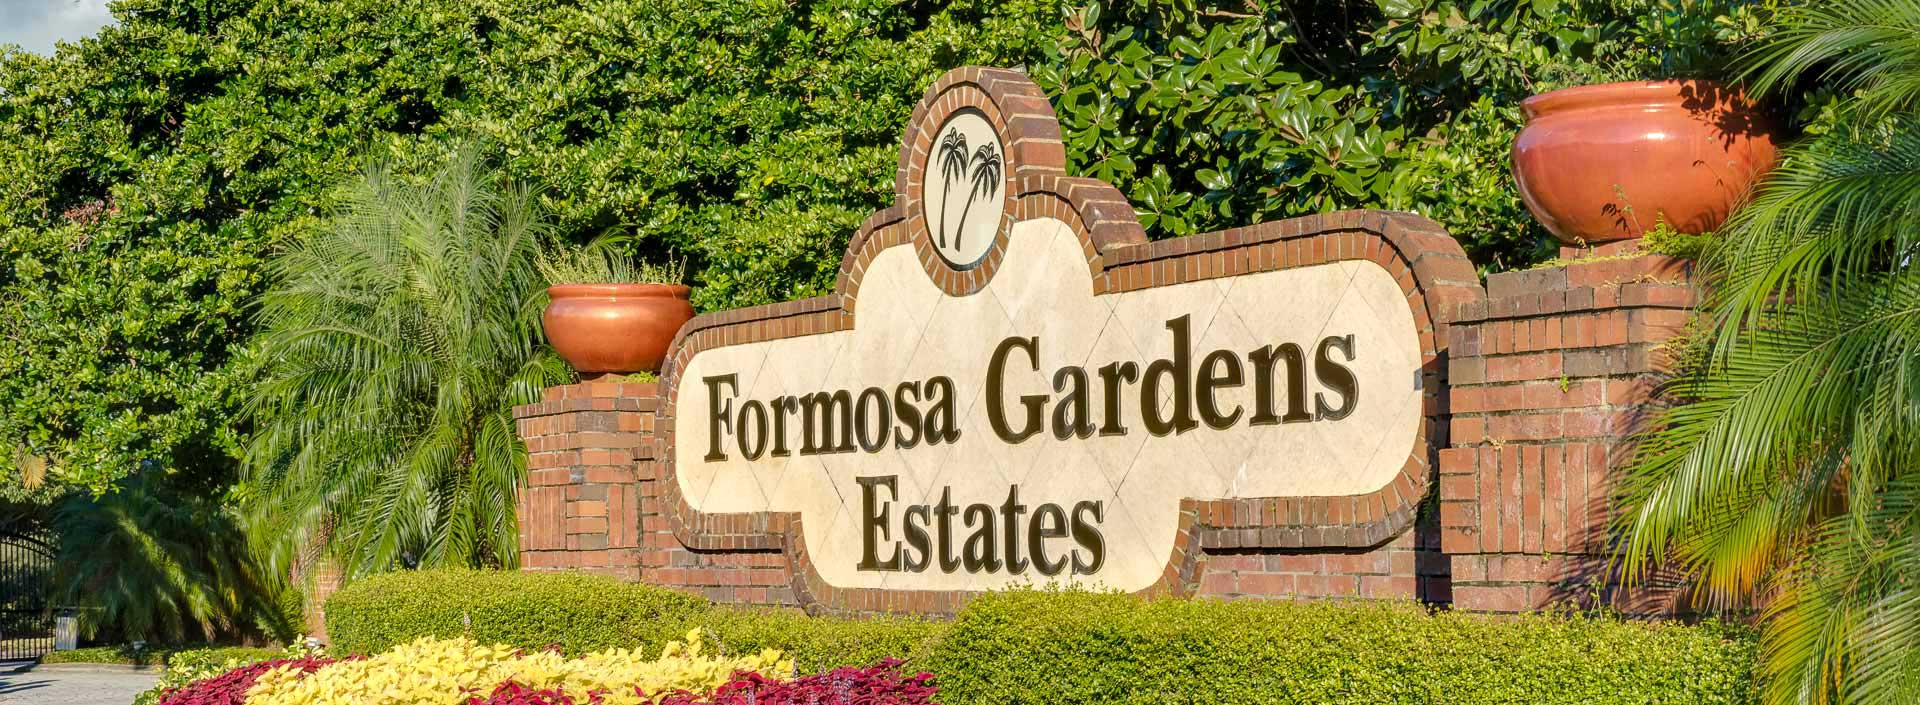 Homes For Sale In Formosa Gardens Homes For Sale Near